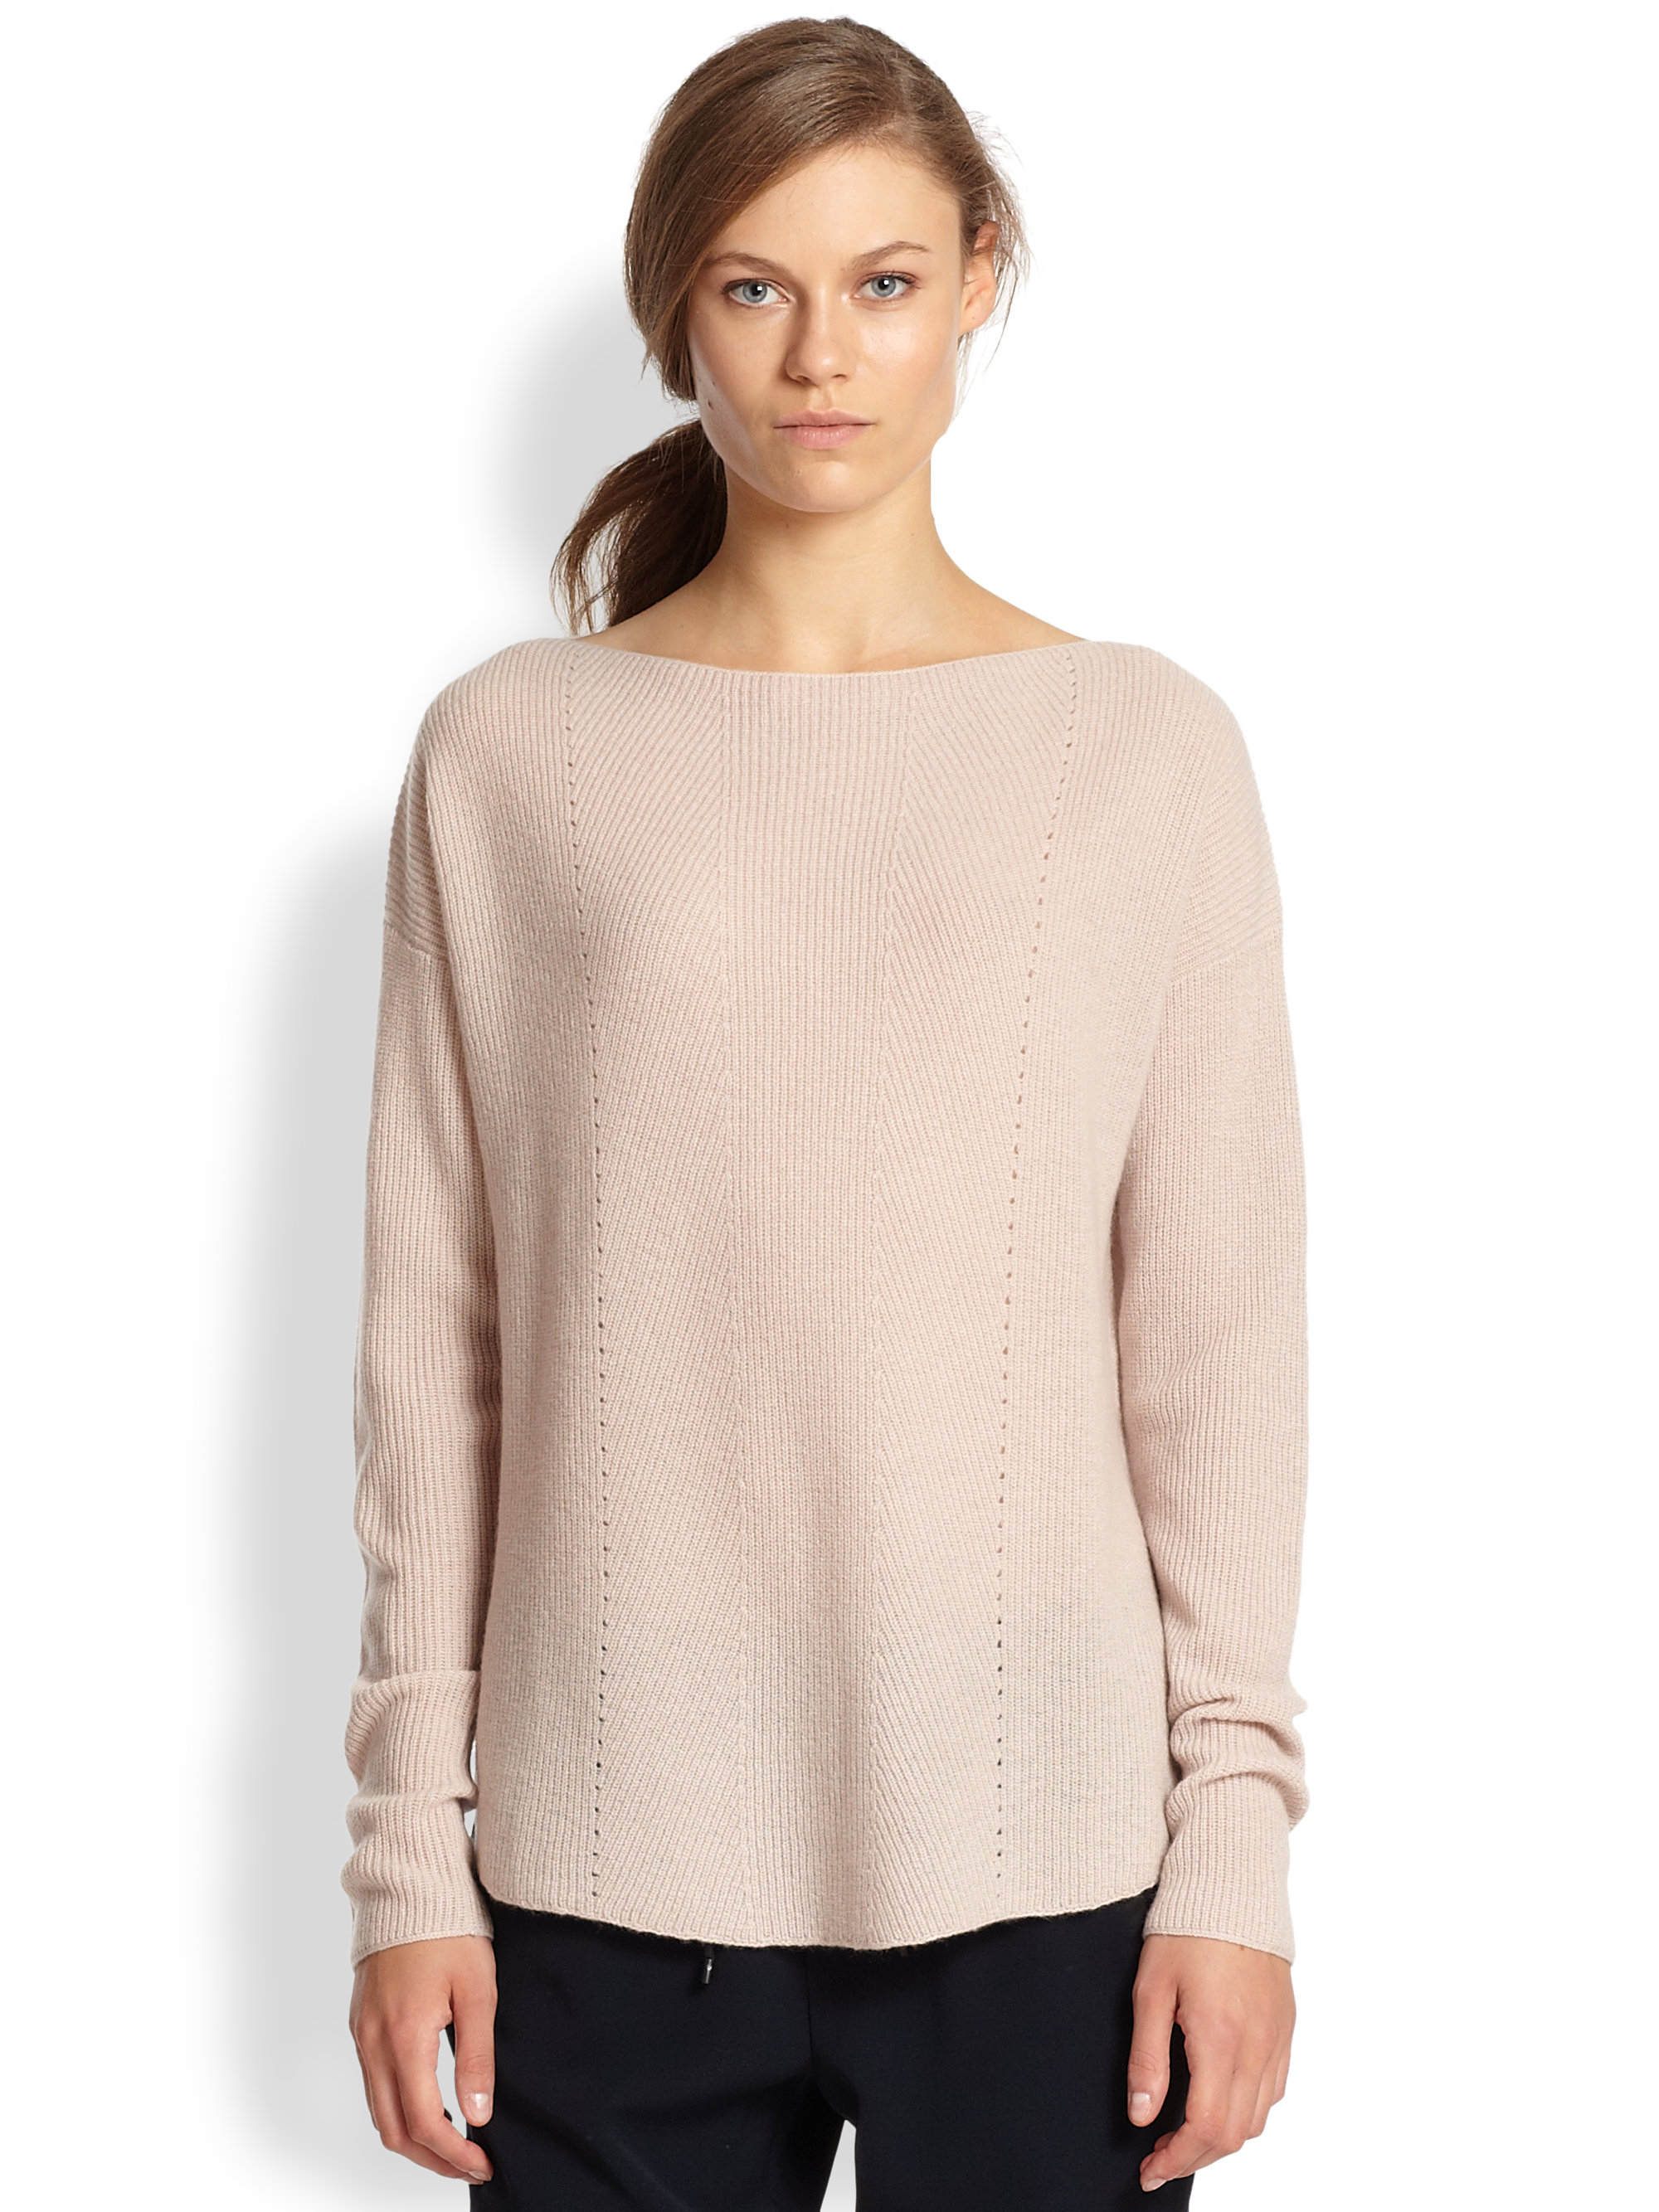 Ribbed Boatneck Sweater: The sweater that goes with everything from career pants to jeans! Features a wonderfully soft sweater knit, flattering ribbed boatneck and button details on sleeves. Features a wonderfully soft sweater knit, flattering ribbed boatneck and button details on sleeves.